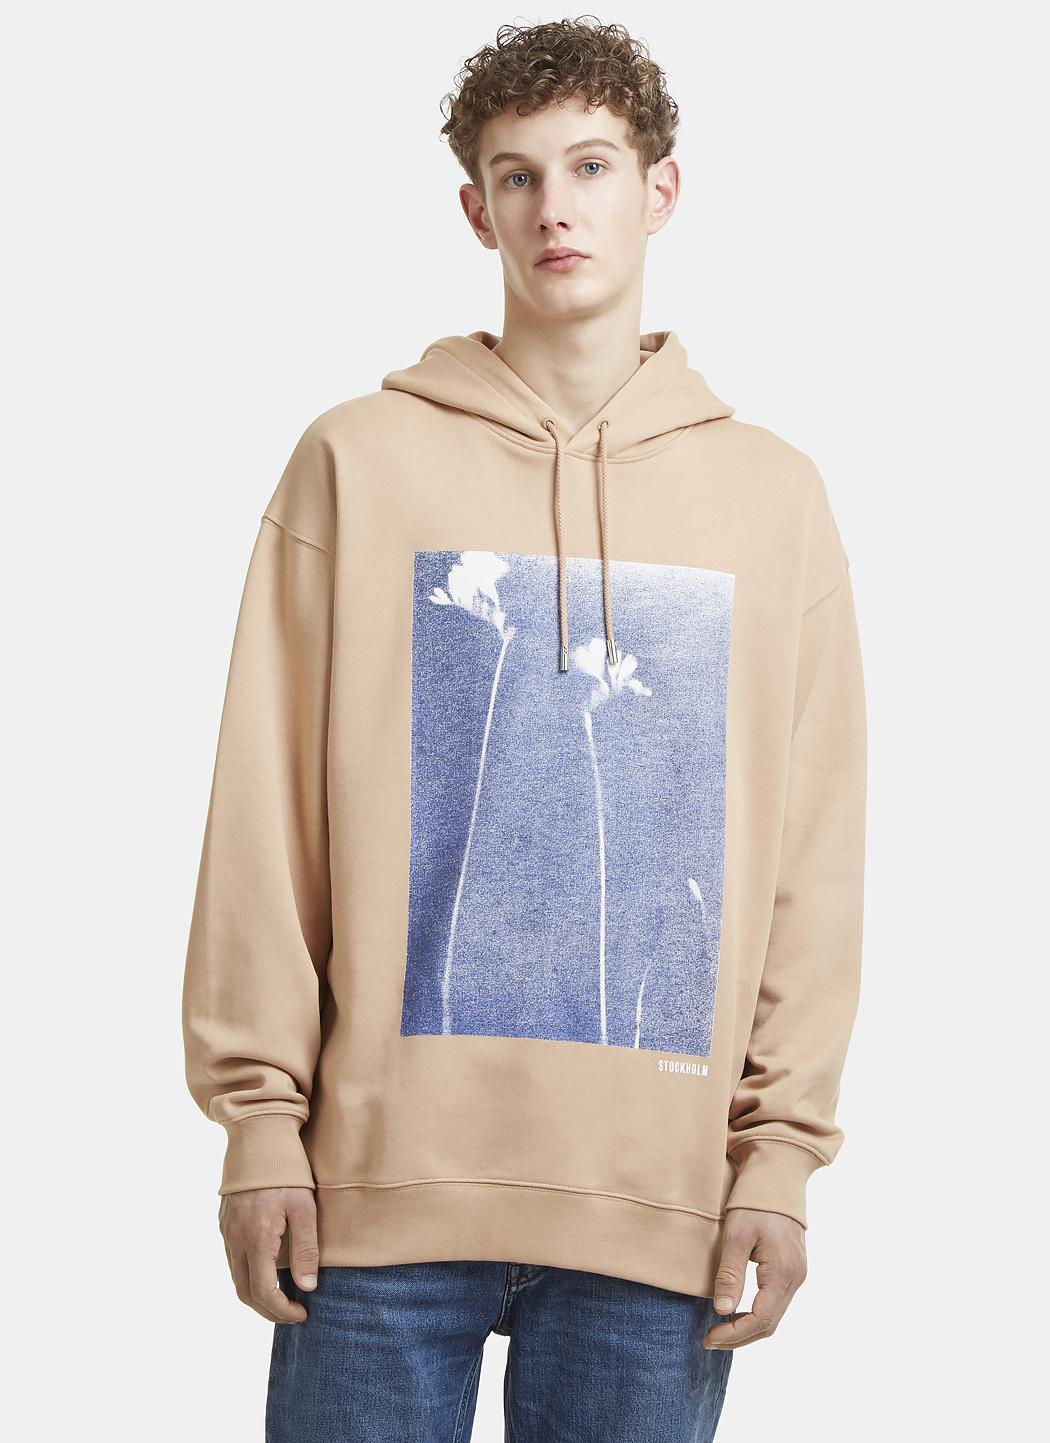 Manchester For Sale Drumn Oversized Printed Fleece-back Cotton-jersey Hoodie Acne Studios Buy Cheap Wholesale Price fwYBGFq